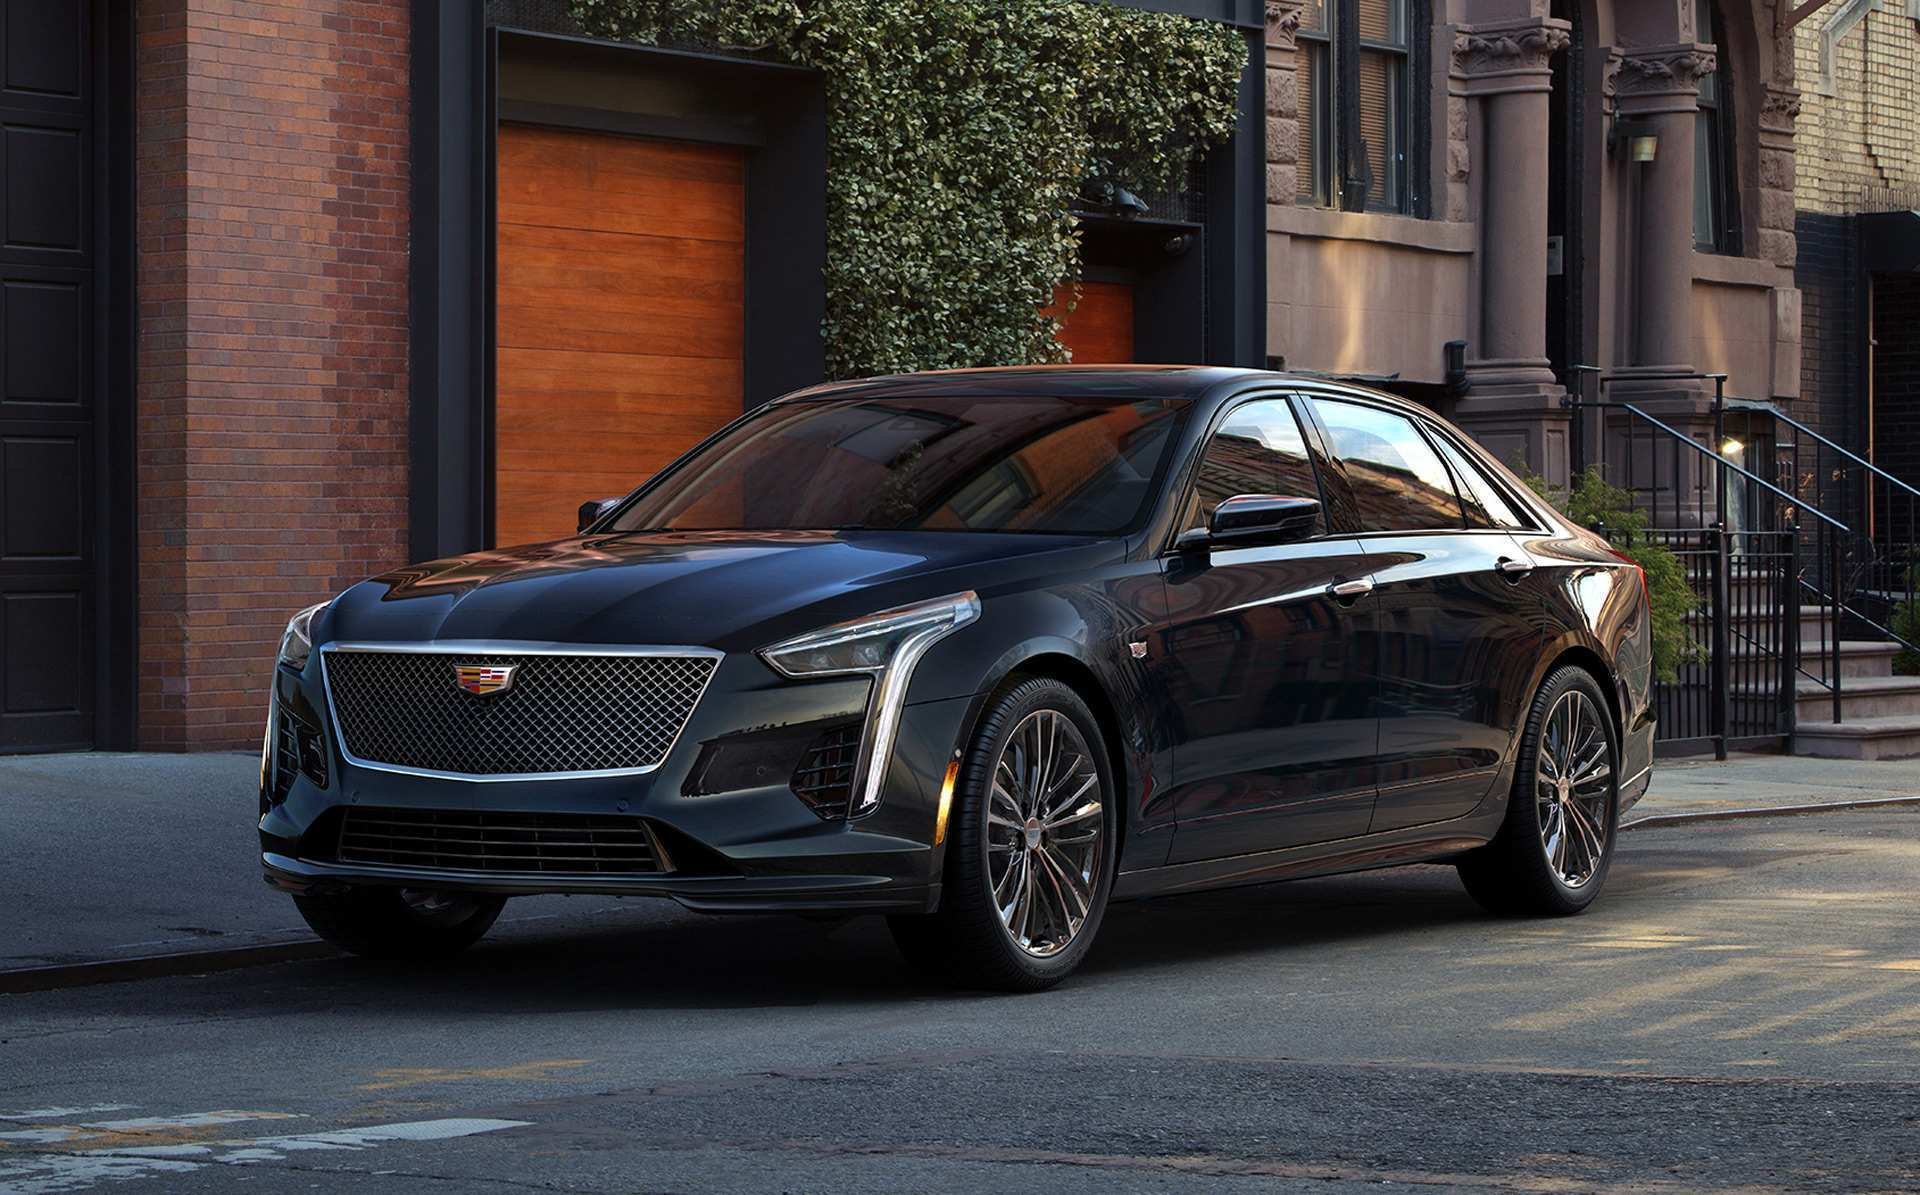 77 The Best 2020 Cadillac Ct6 V Wallpaper